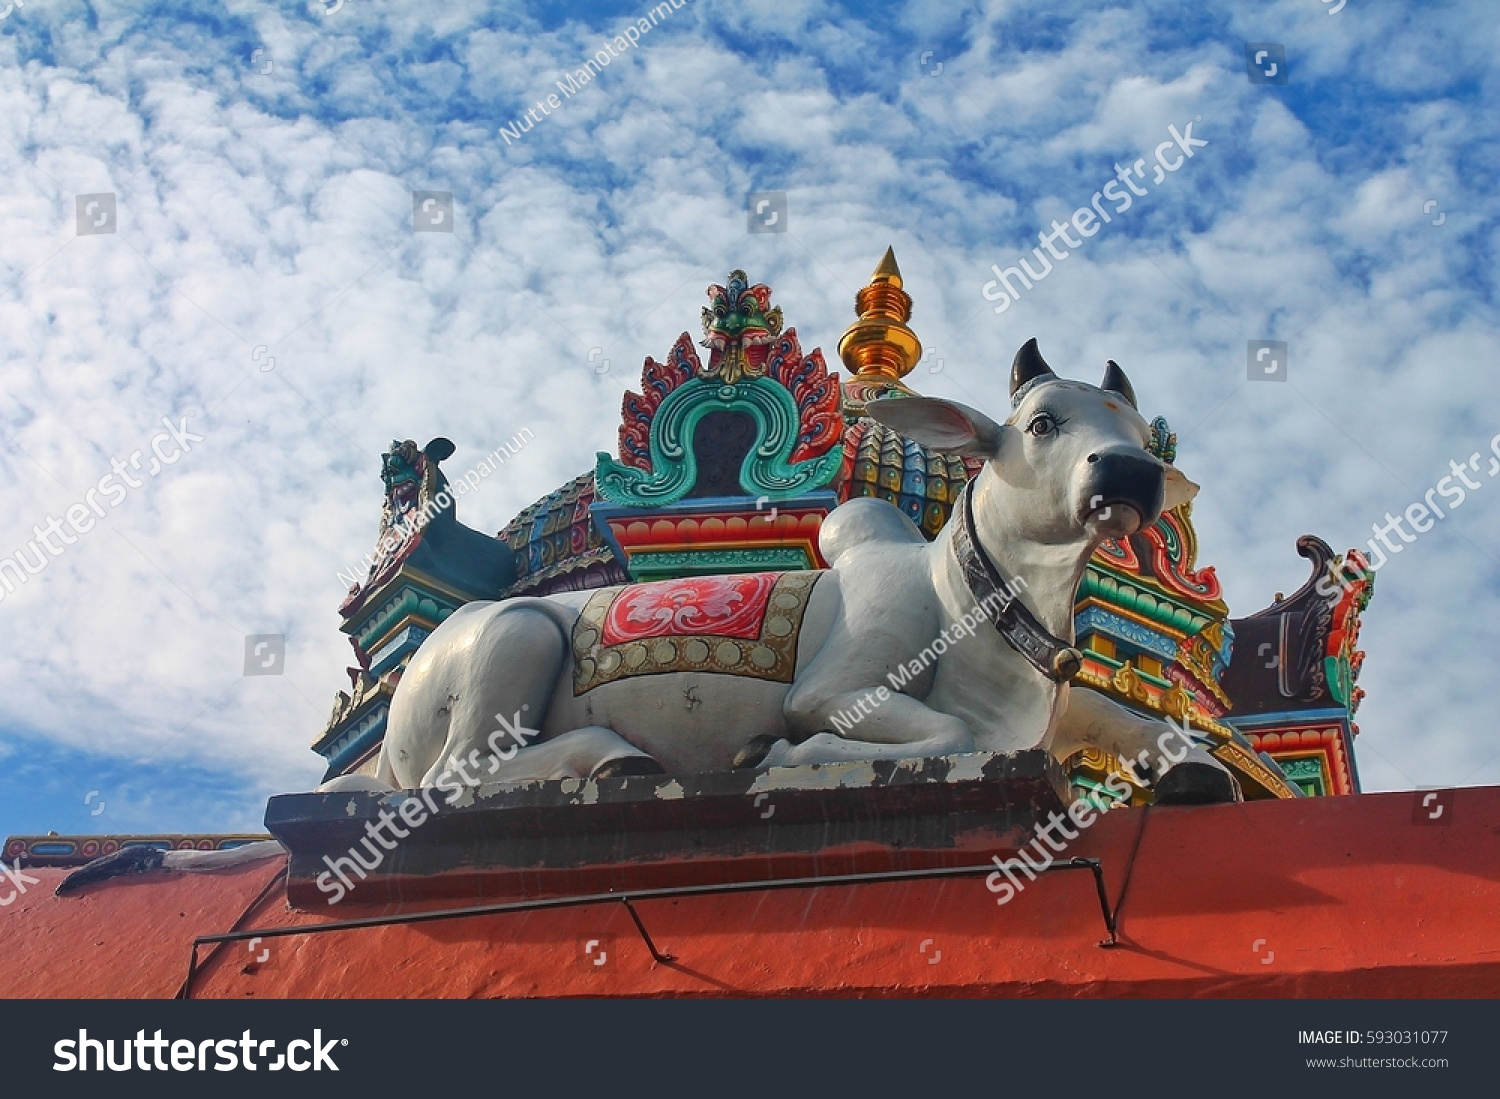 Cow statue on top door singapore stock photo 593031077 shutterstock a cow statue on the top of the door in singapore hindu temple is a one biocorpaavc Gallery